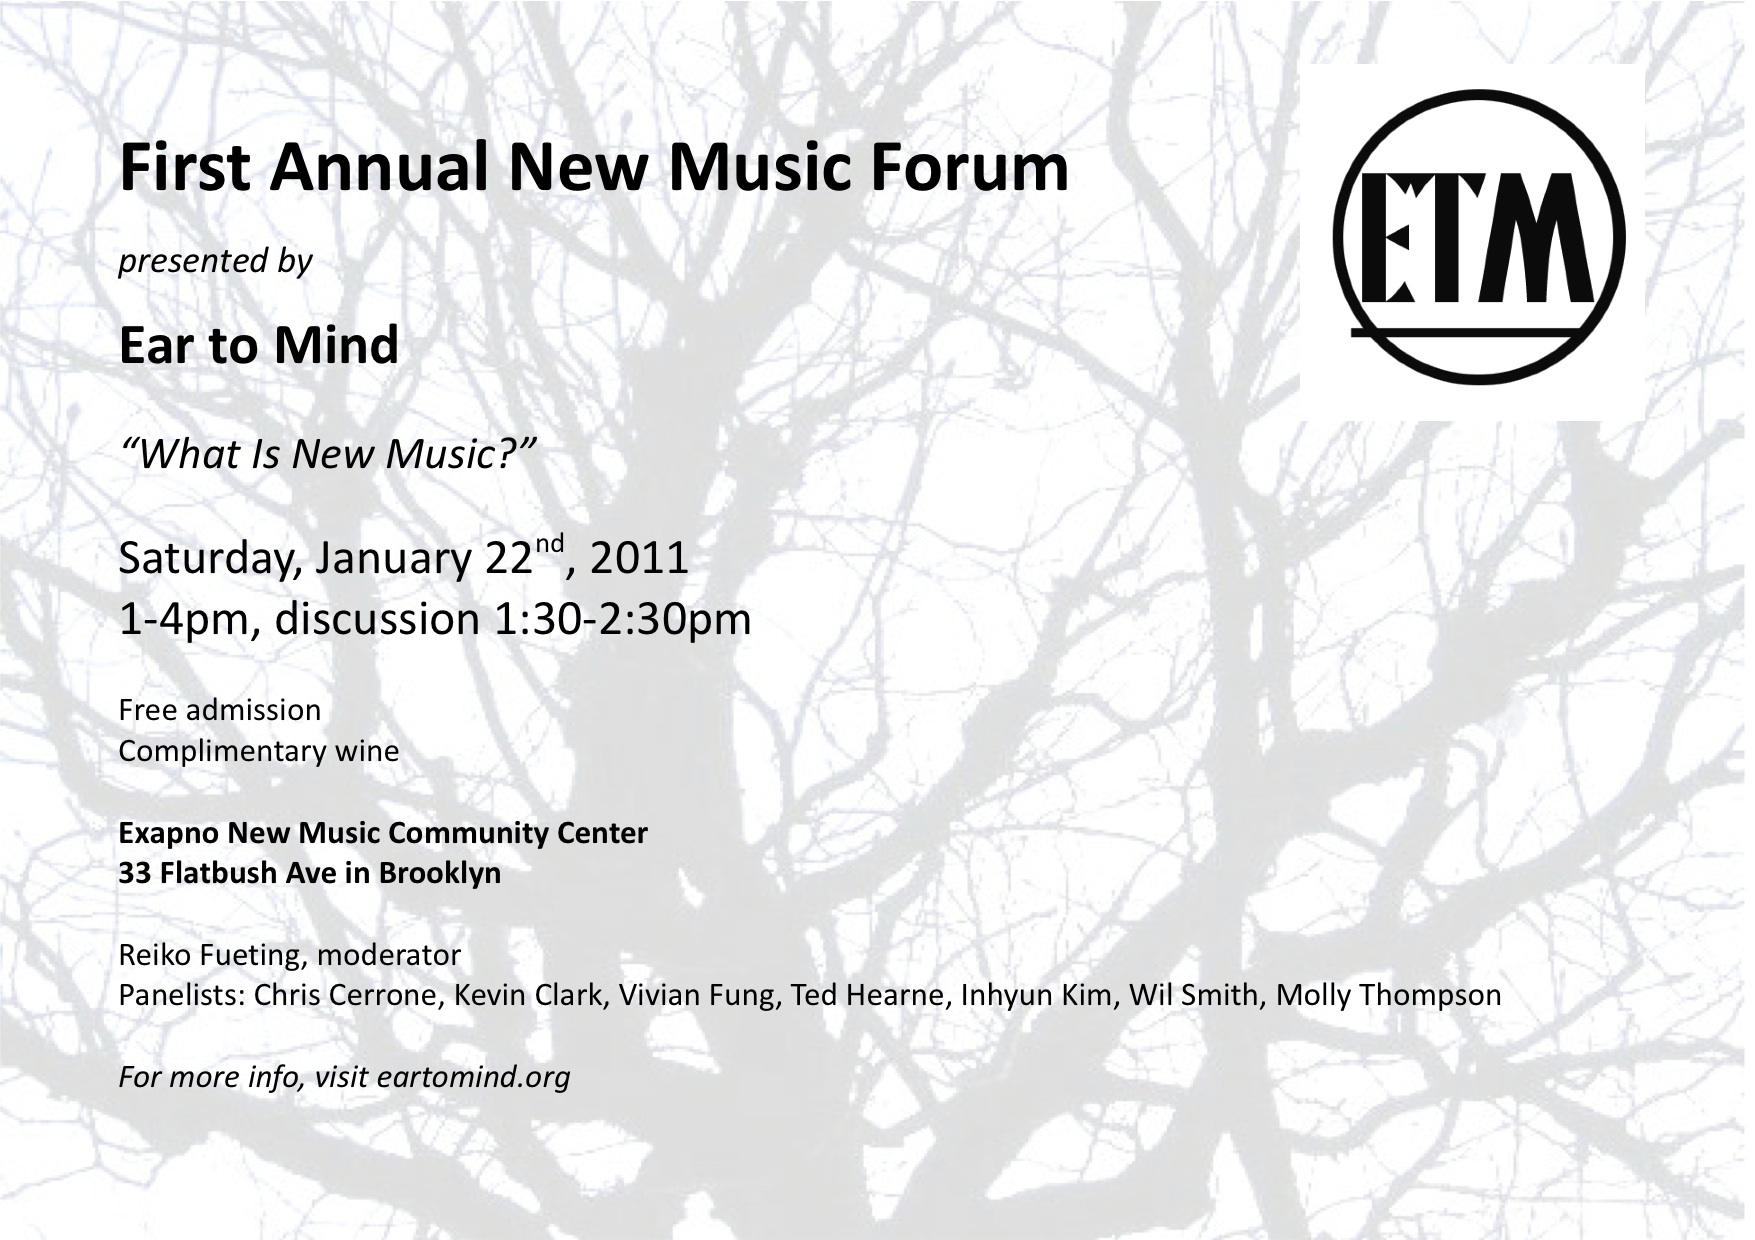 Ear to Mind's First Annual New Music Forum Saturday Jan 22nd